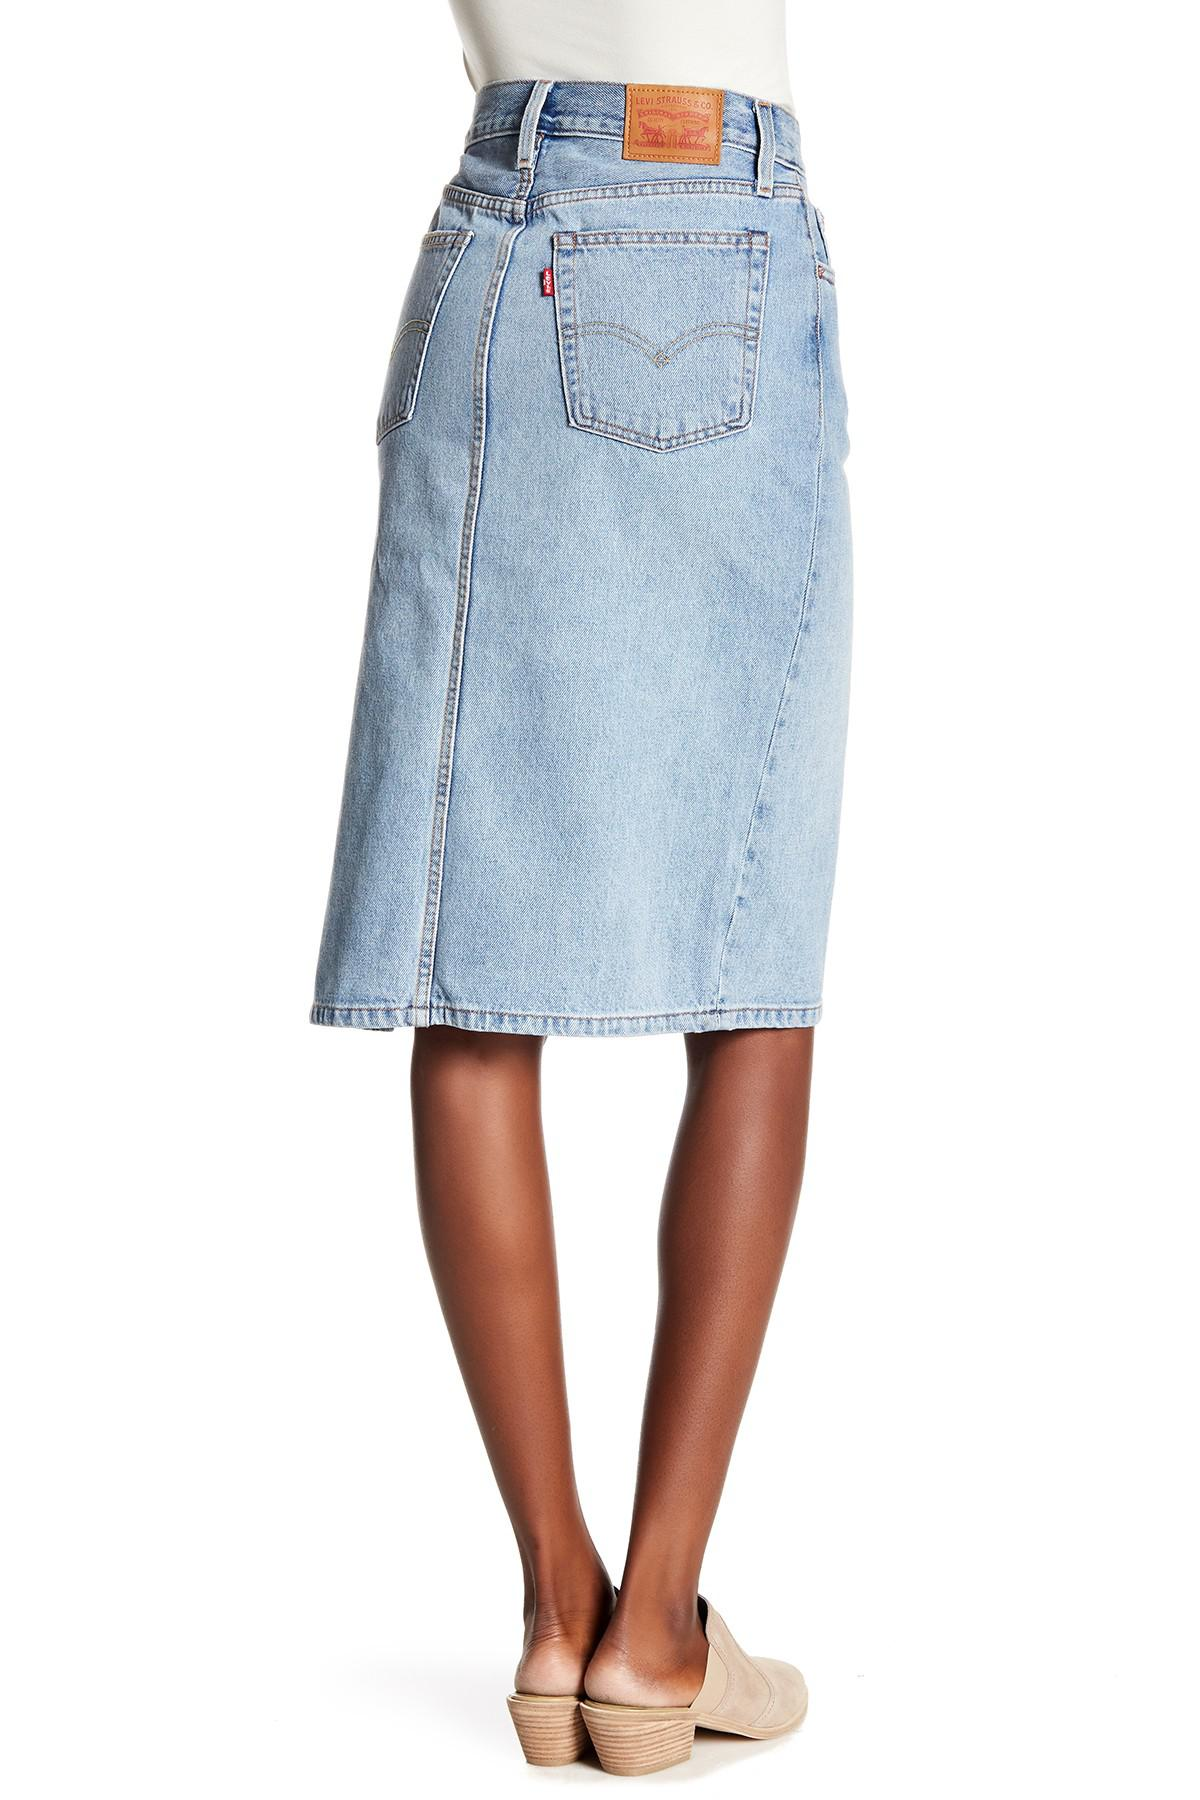 Lyst - Levi s Side Slit Skirt in Blue ca6eaa63e